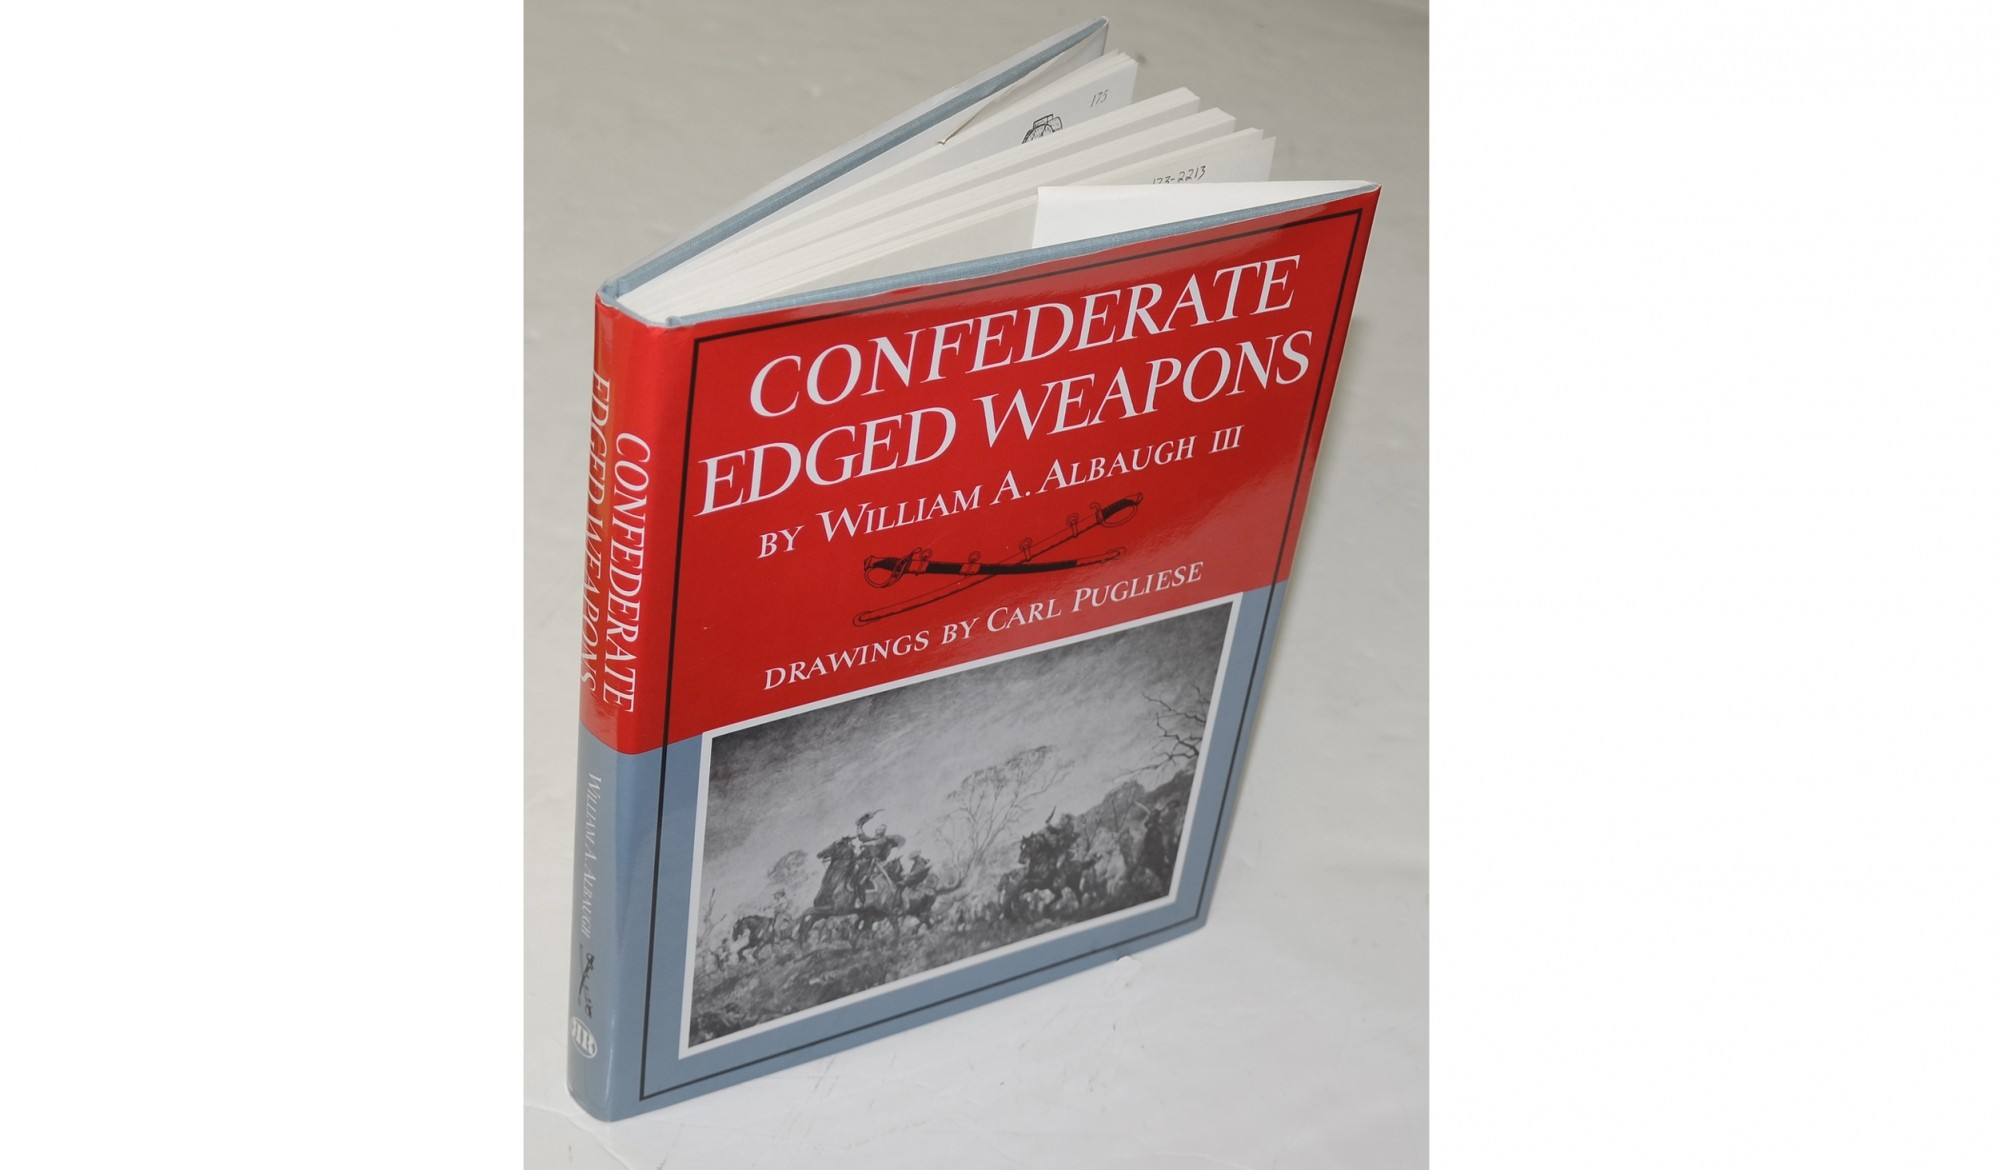 <I>CONFEDERATE EDGED WEAPONS</I> BY WILLIAM A. ALBAUGH III